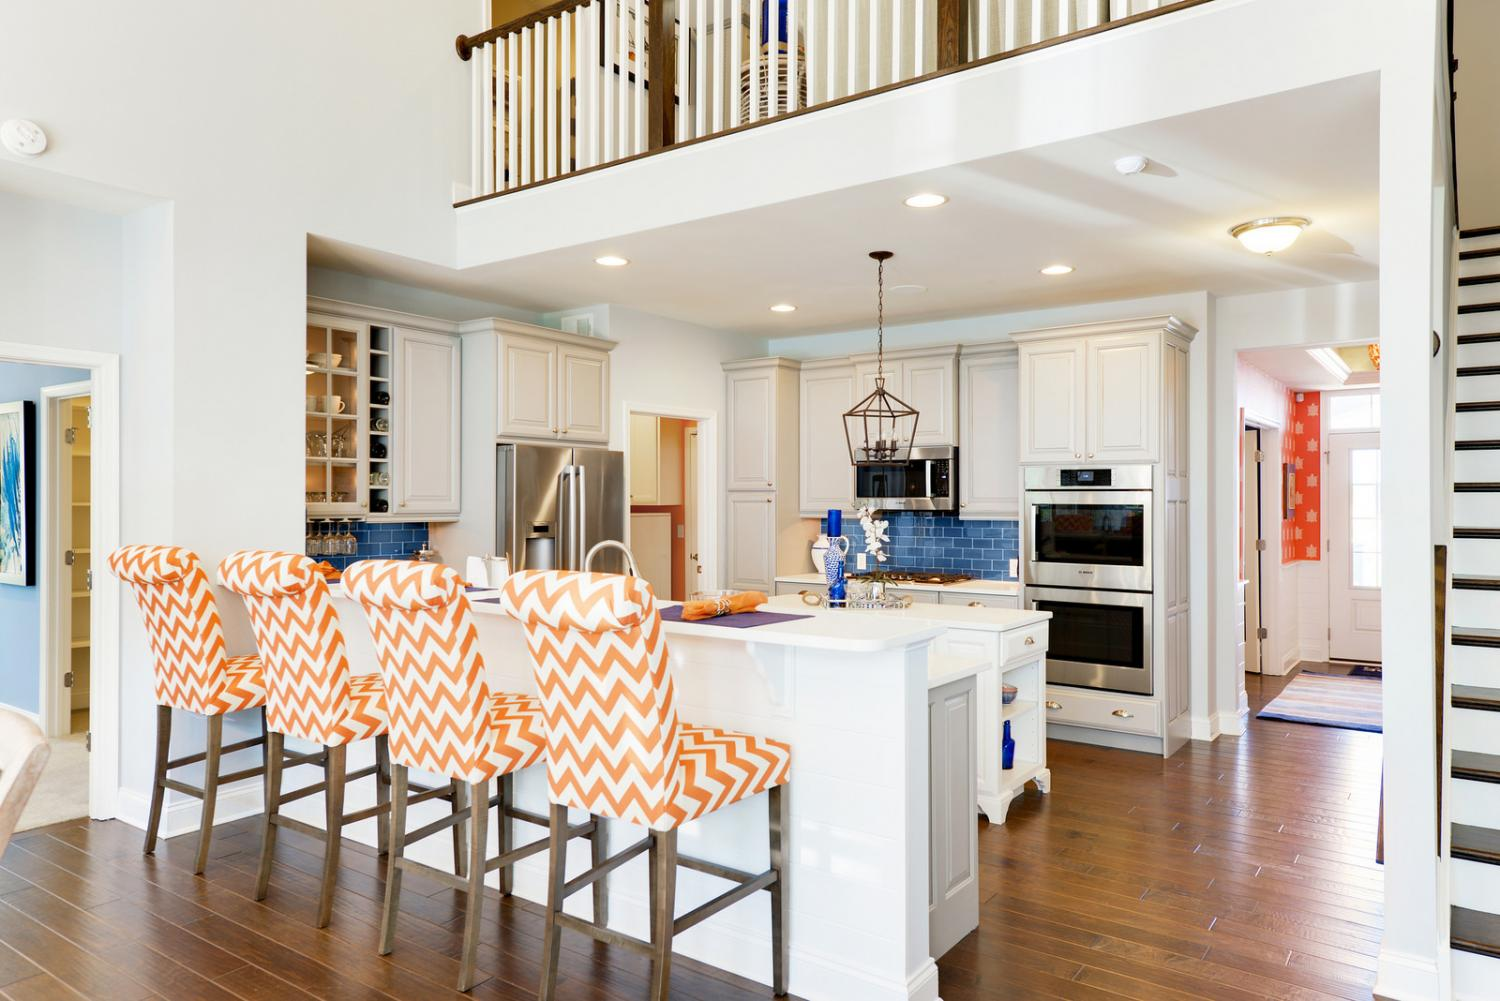 Ainsley Model Home - Peninsula Lakes - Schell Brothers